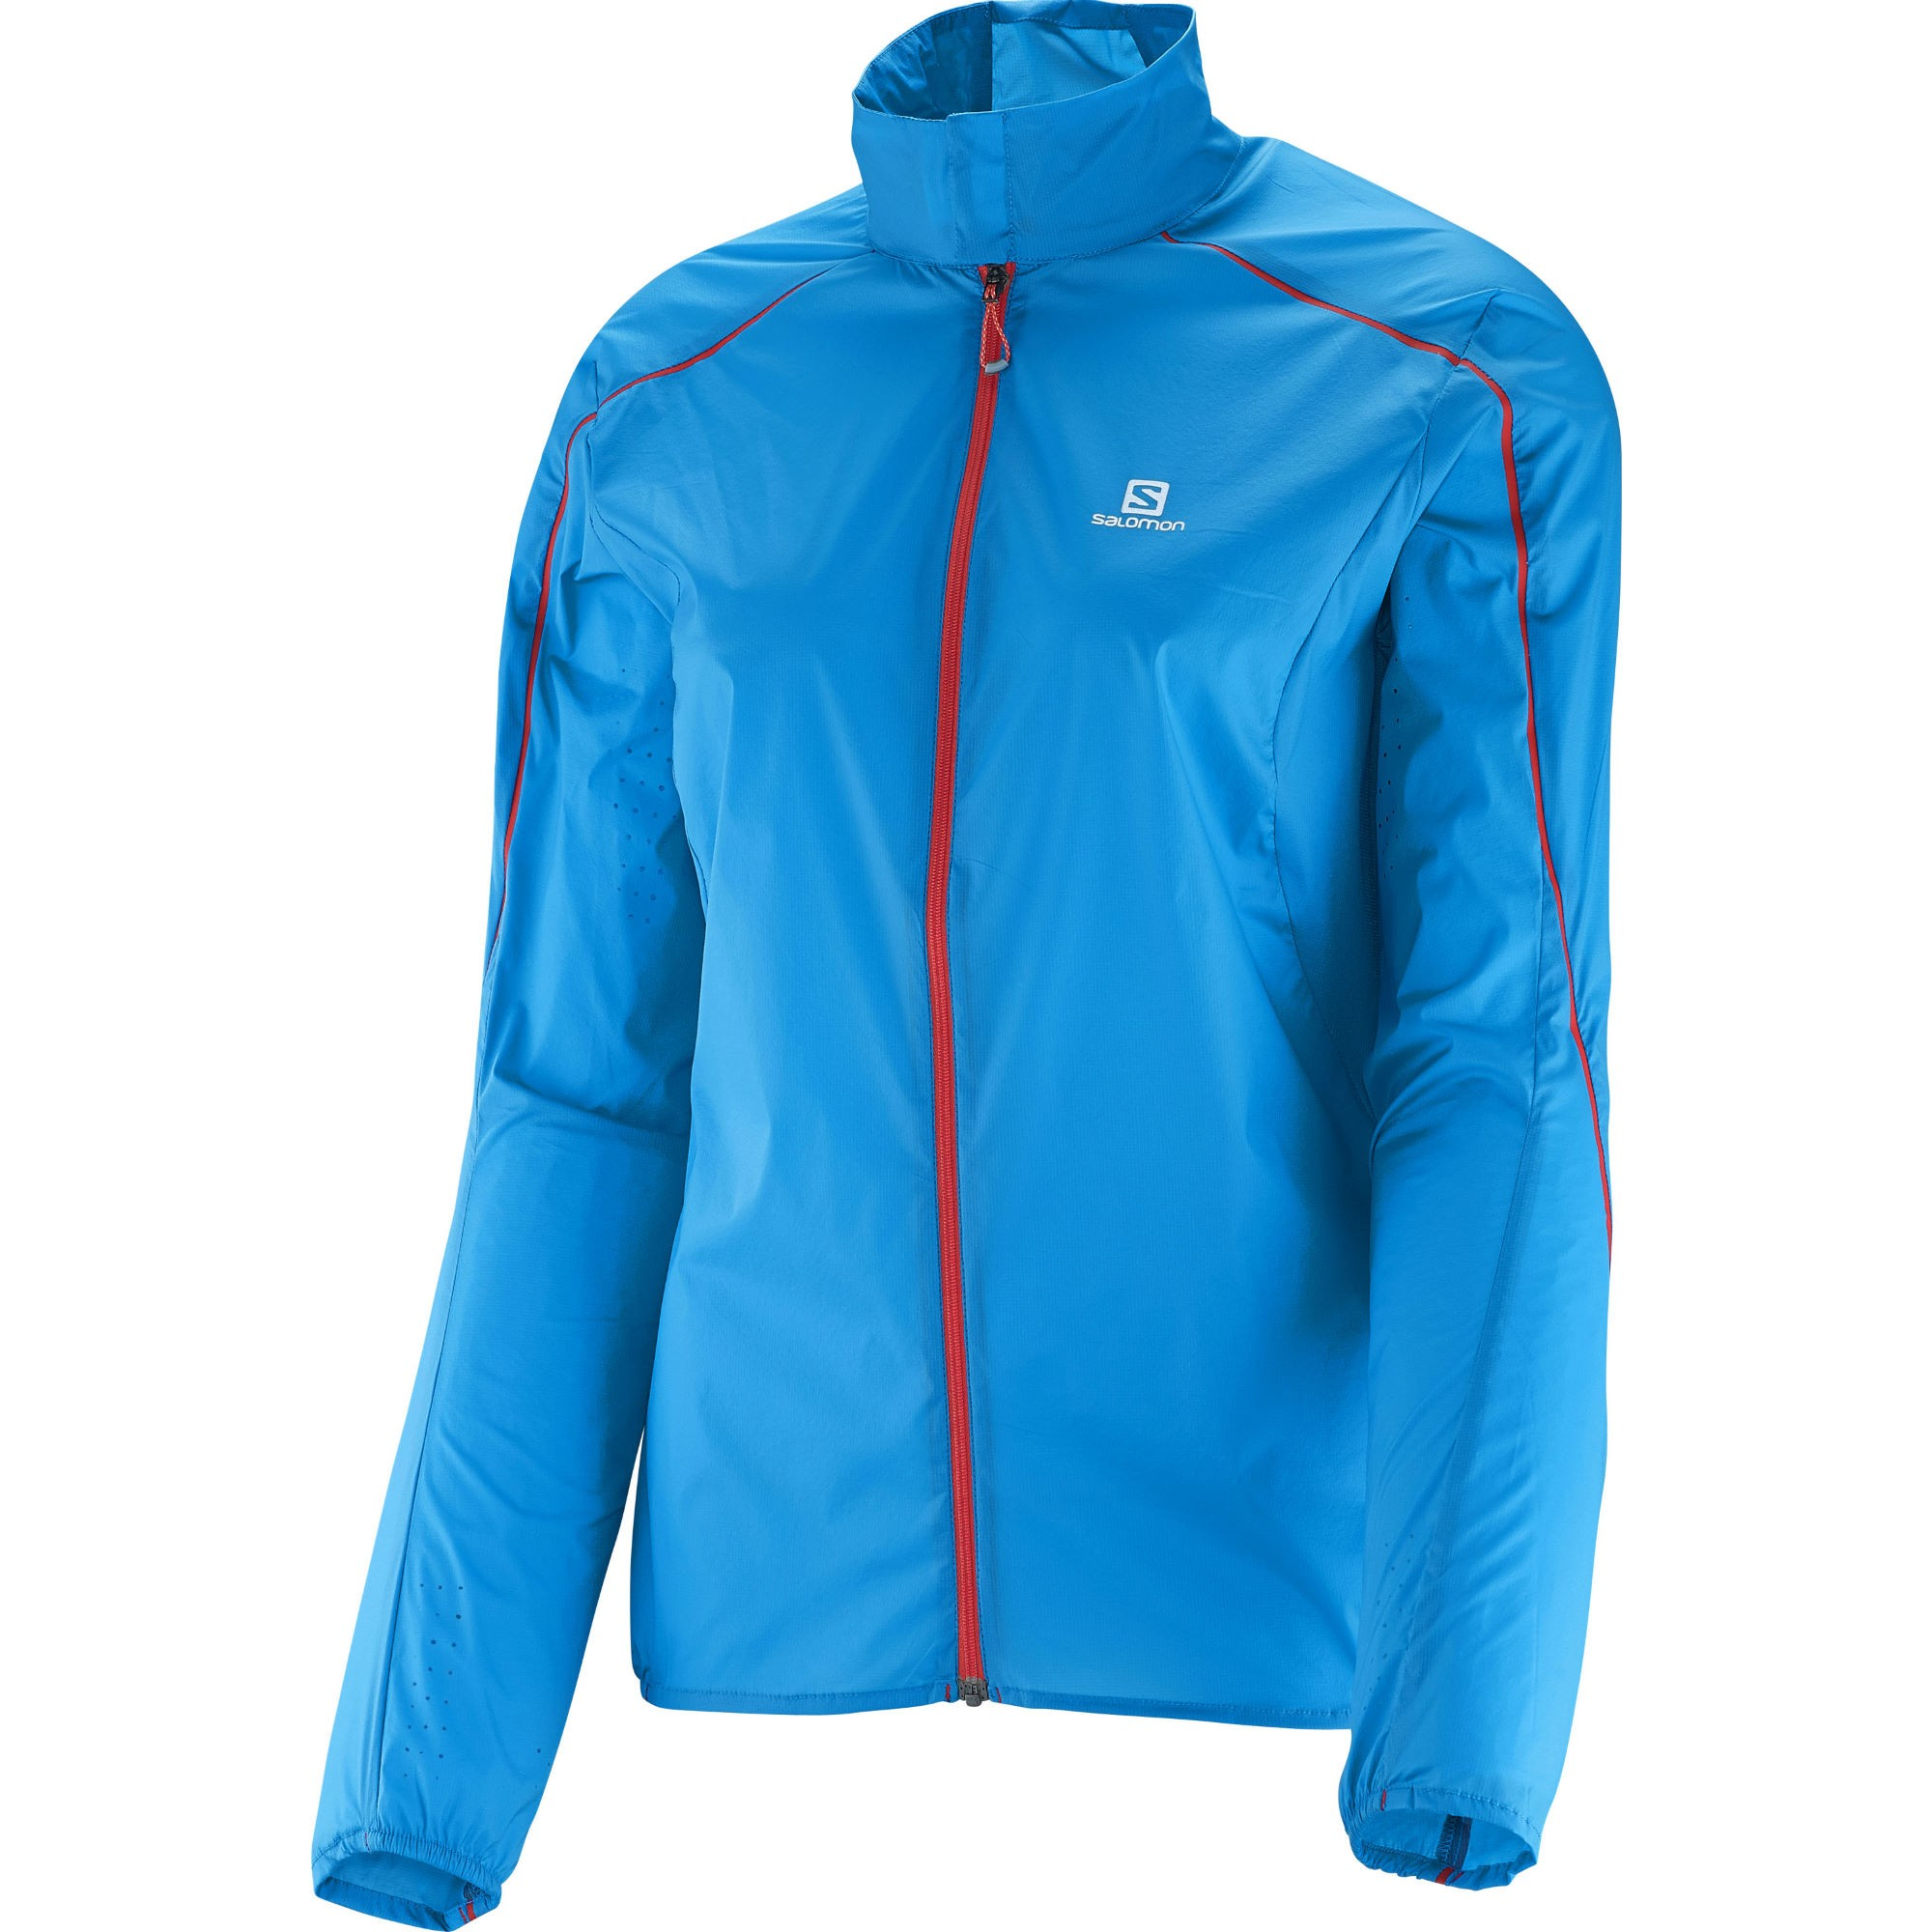 bf308c3a0 Trail, firness specialist : SALOMON S-LAB LIGHT JACKET BLUE FOR WOMEN'S -  Running Discount